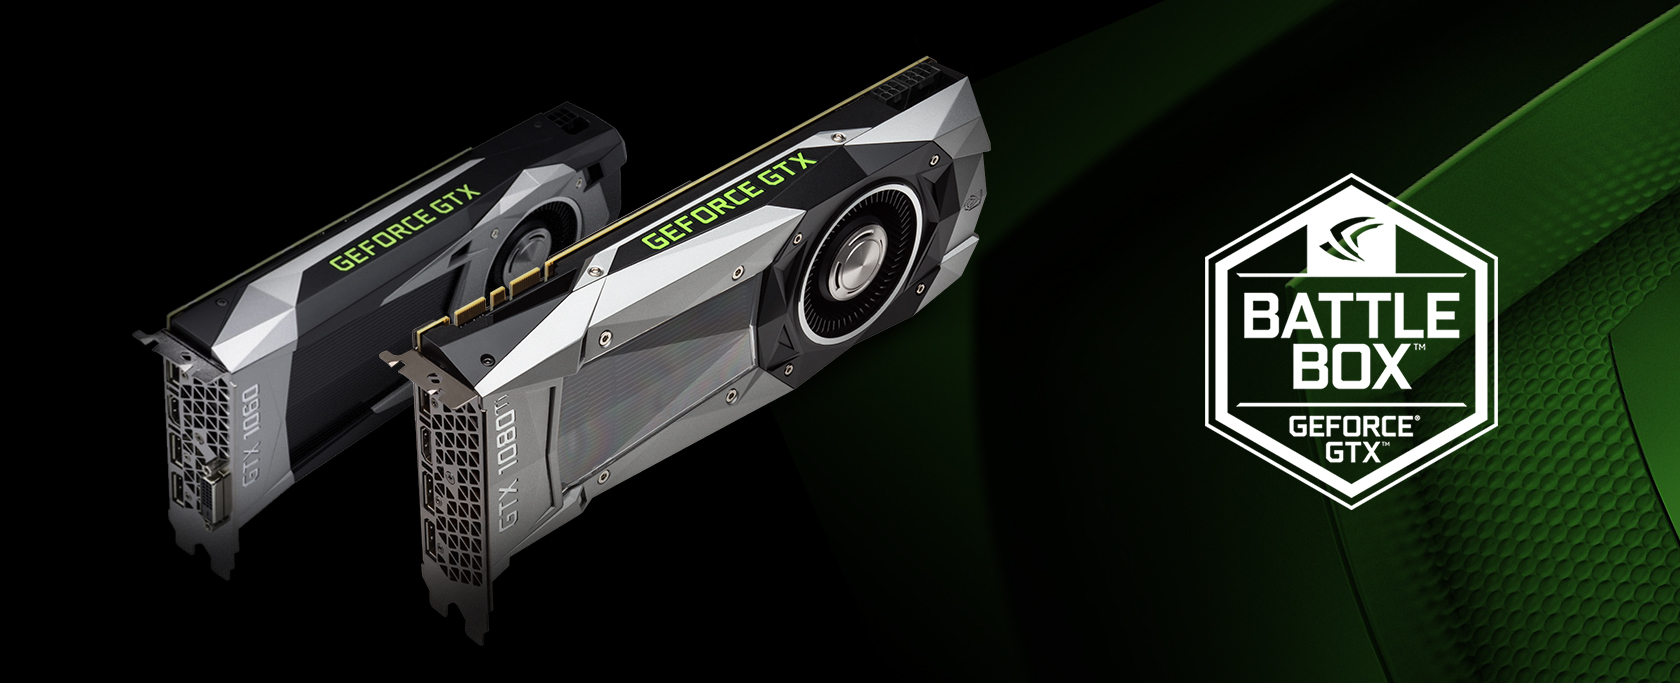 Neologic Battlebox com Geforce GTX 1080 Ti e GTX 1060